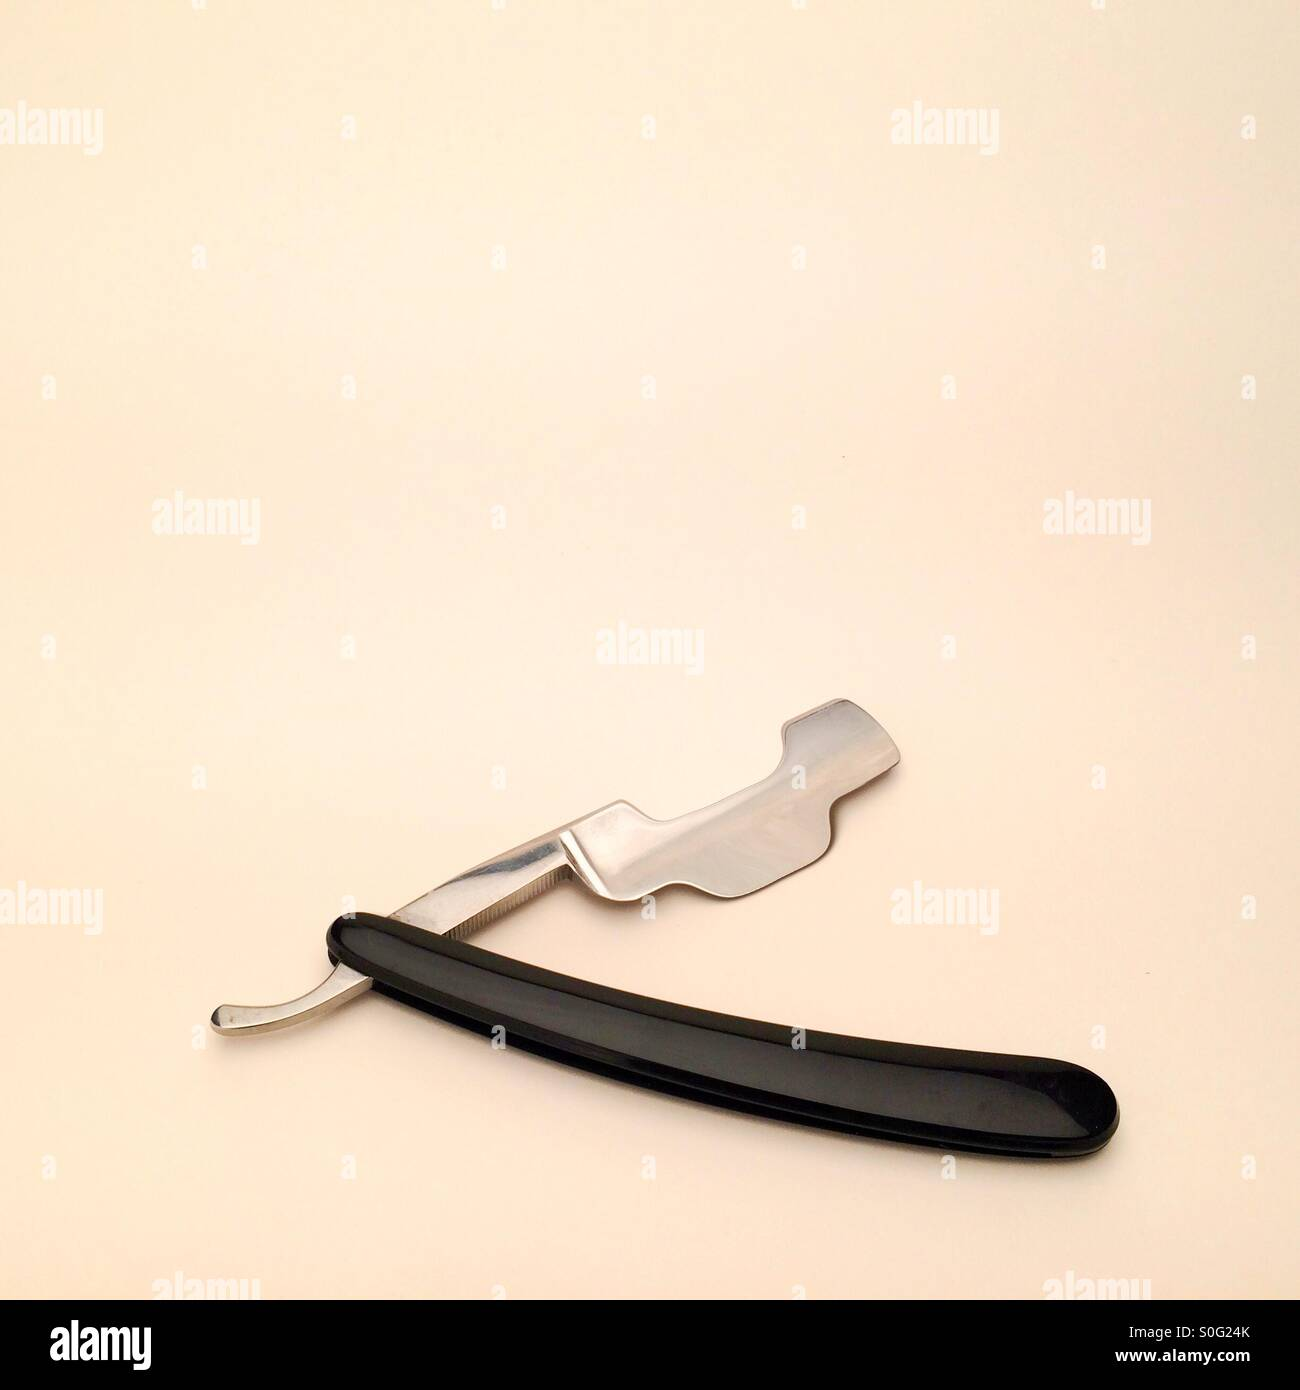 Artistic digitally altered image showing a futuristic fantasy steampunk strange and surreal shaped cut throat razor - Stock Image